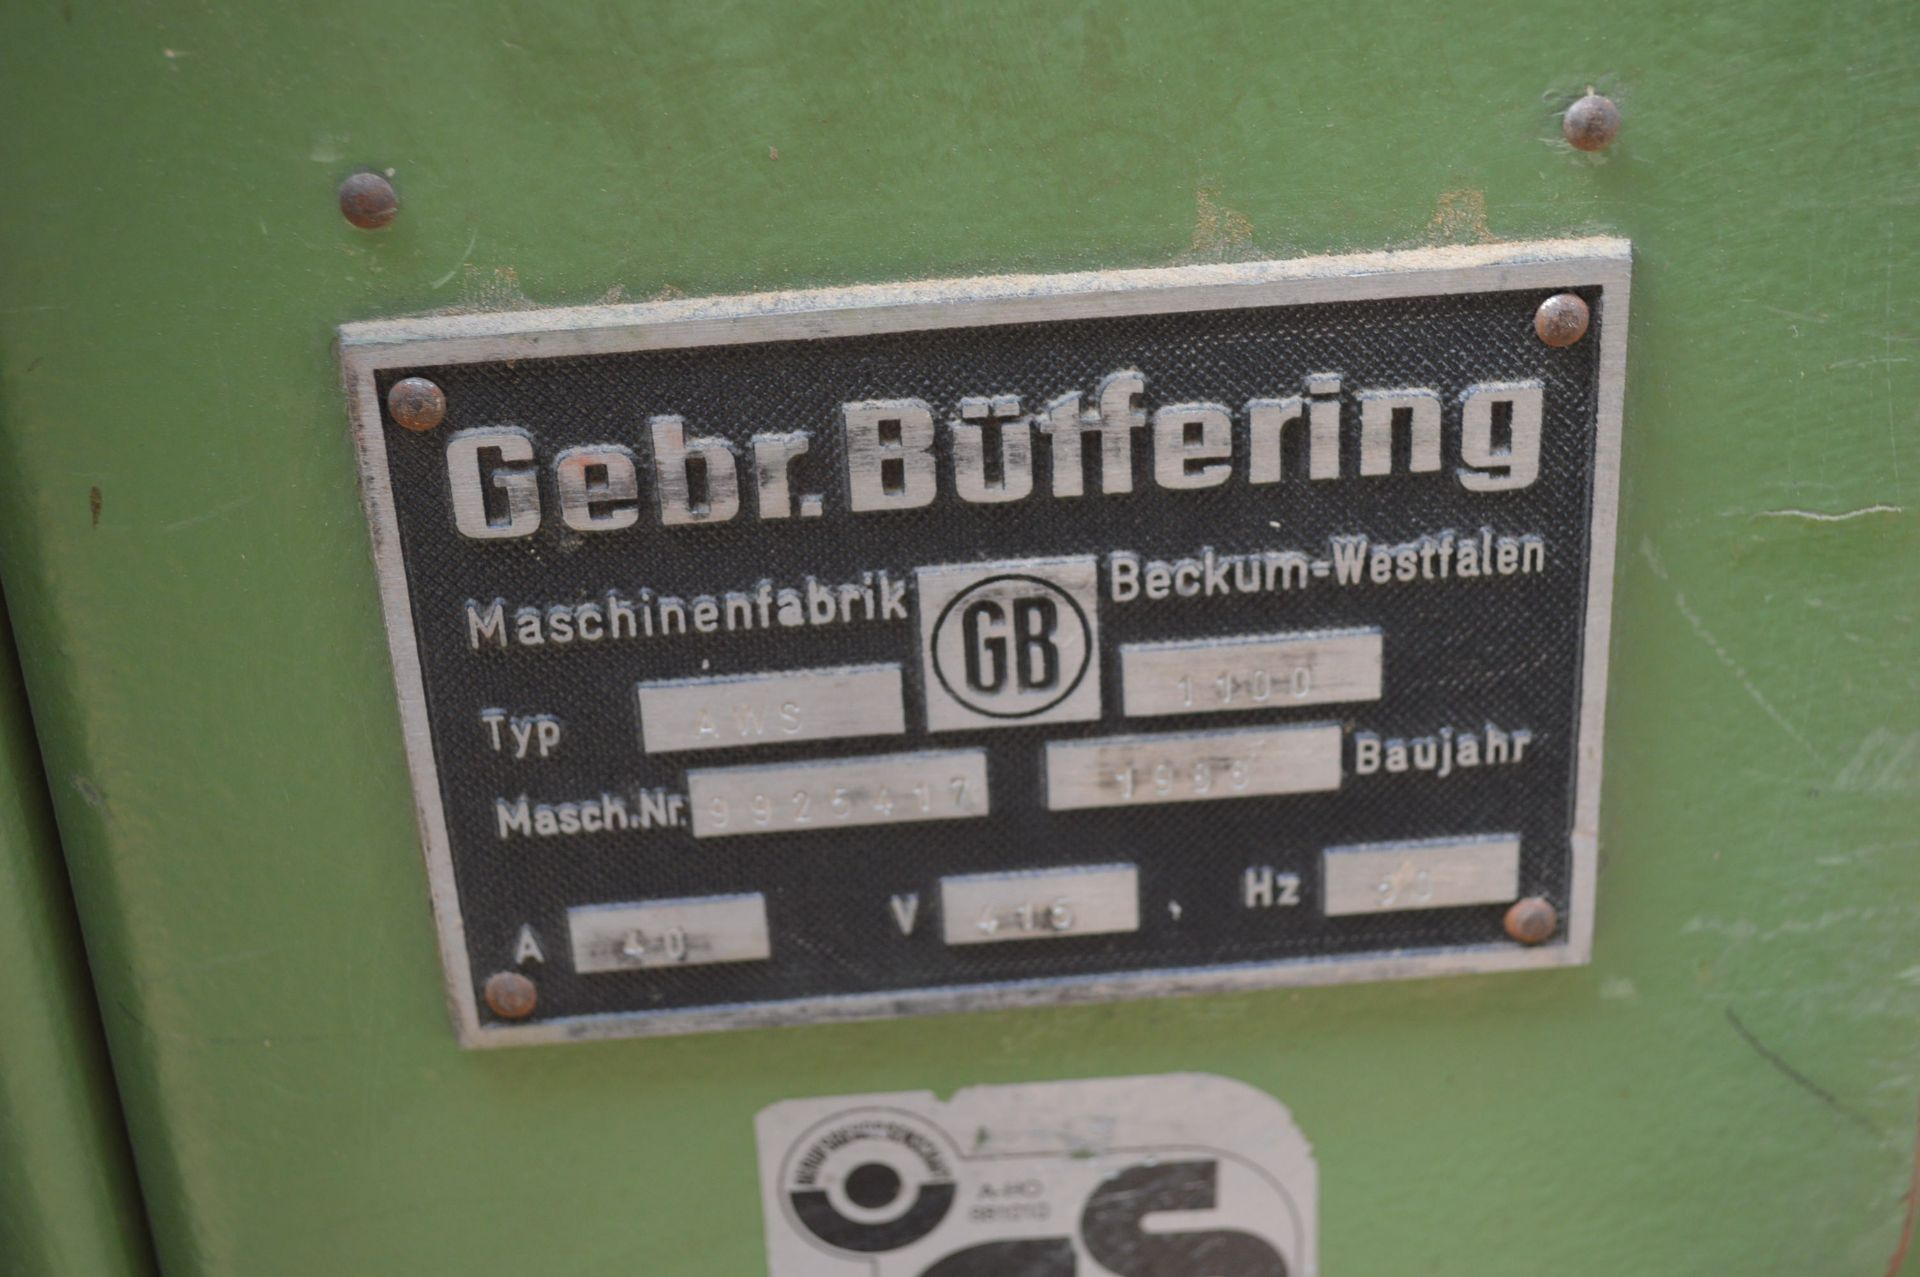 Lot 5 - Gebr Butfering AWS1100mm WIDE BELT SANDER, serial no. 9925417, year of manufacture 1988